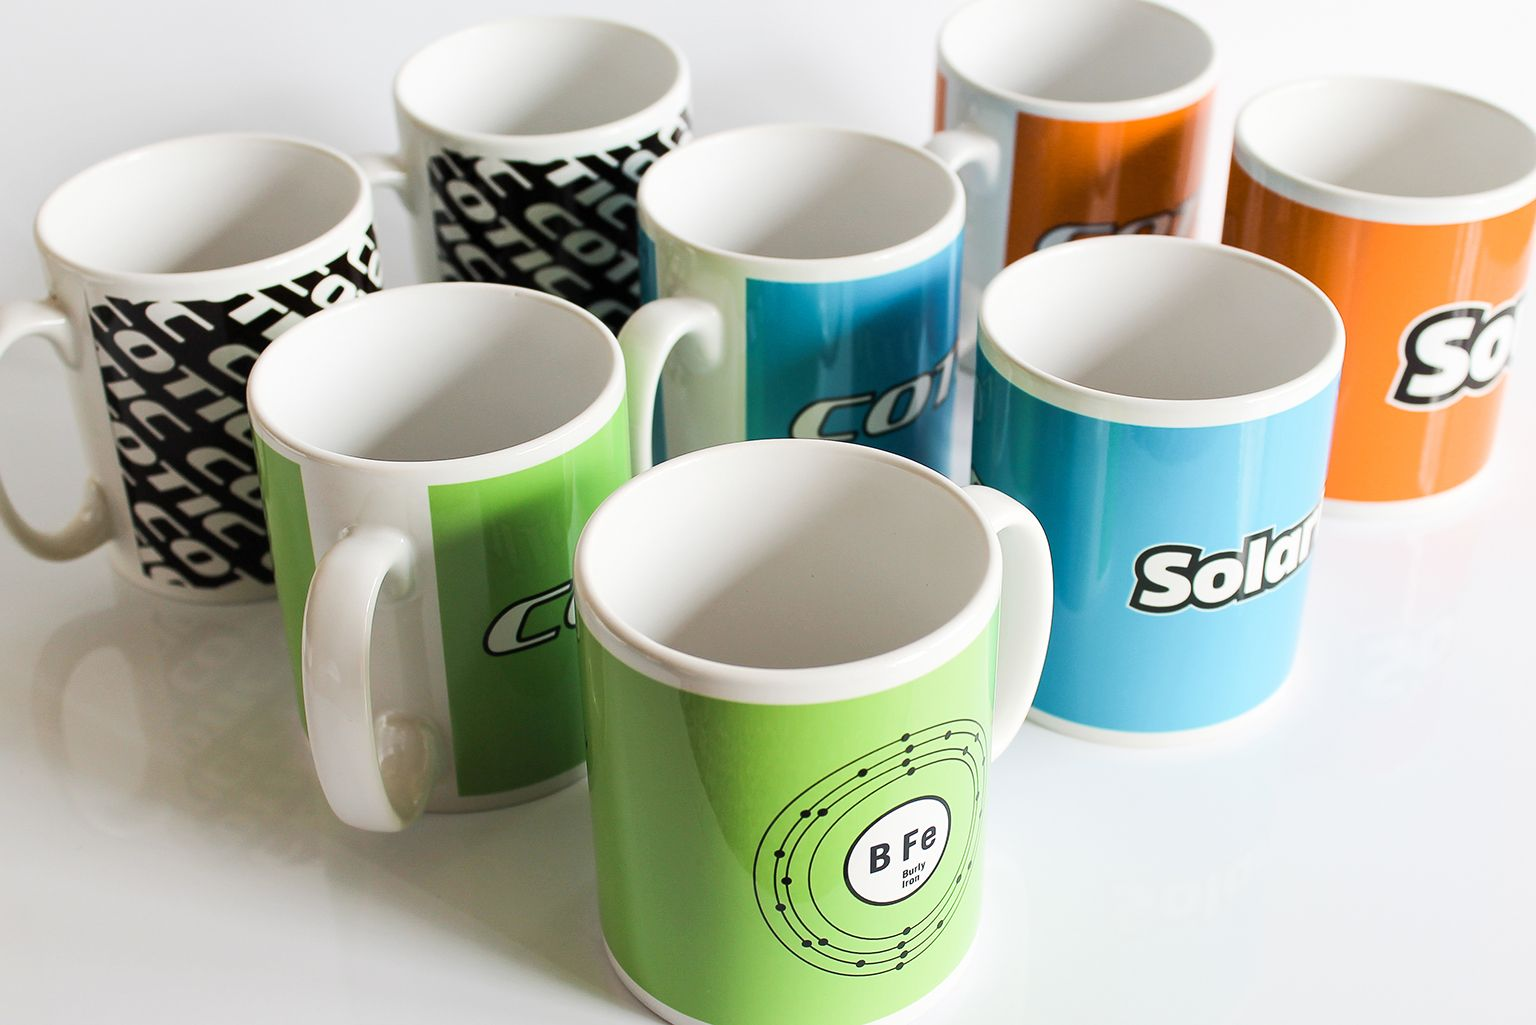 Cotic Mugs On Sale!  Just in time for Christmas presents! Cotic Bikes have just received these fantastic mugs that we have produced for them.  These mugs with their bright colours will cheer anybody up when they are having a morning cuppa and biscuits.